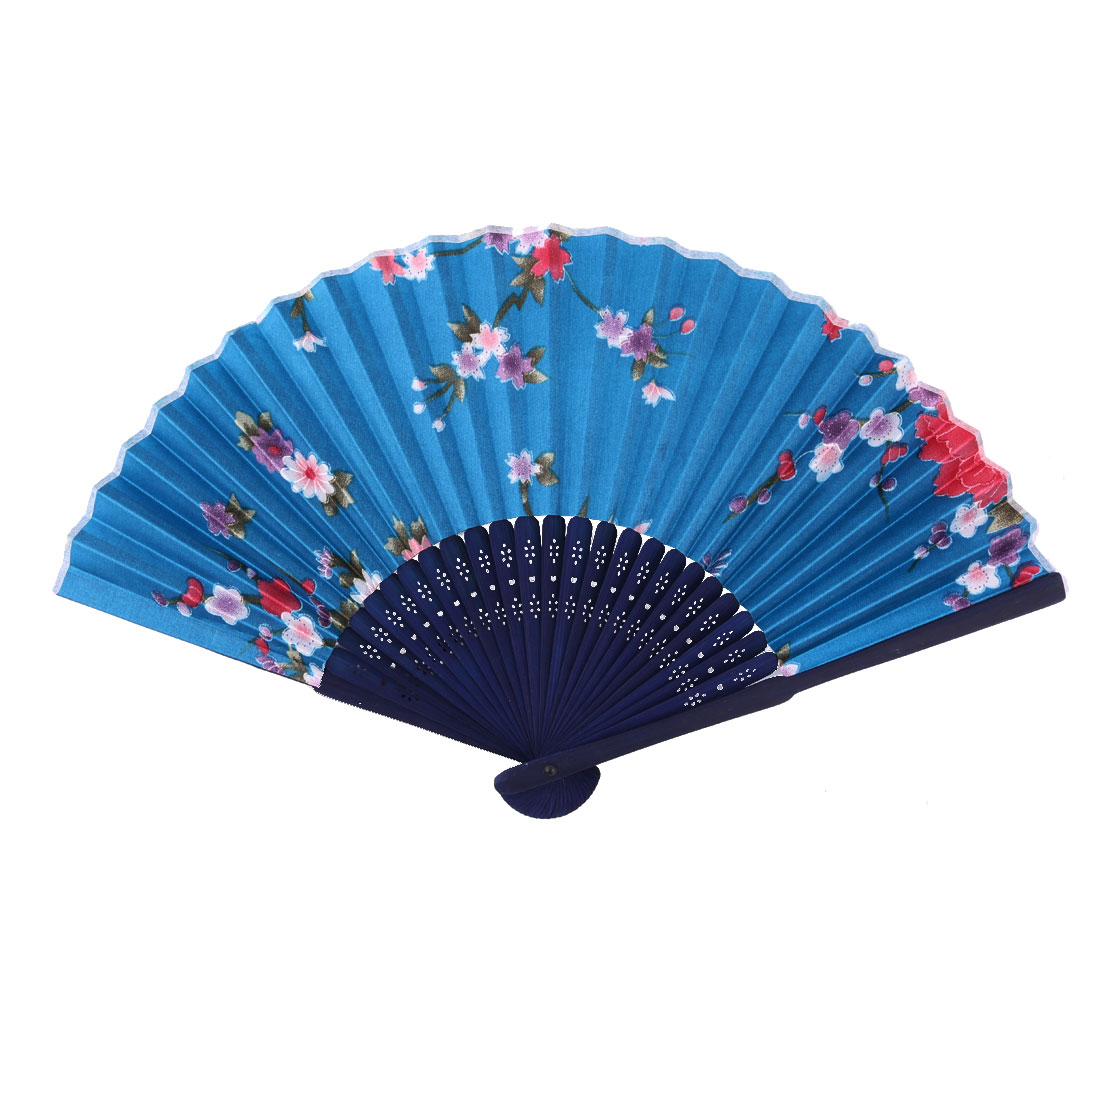 Wedding Polyester Flower Printed Chinese Style Summer Cooling Hand Fan 8.3 Inches Length